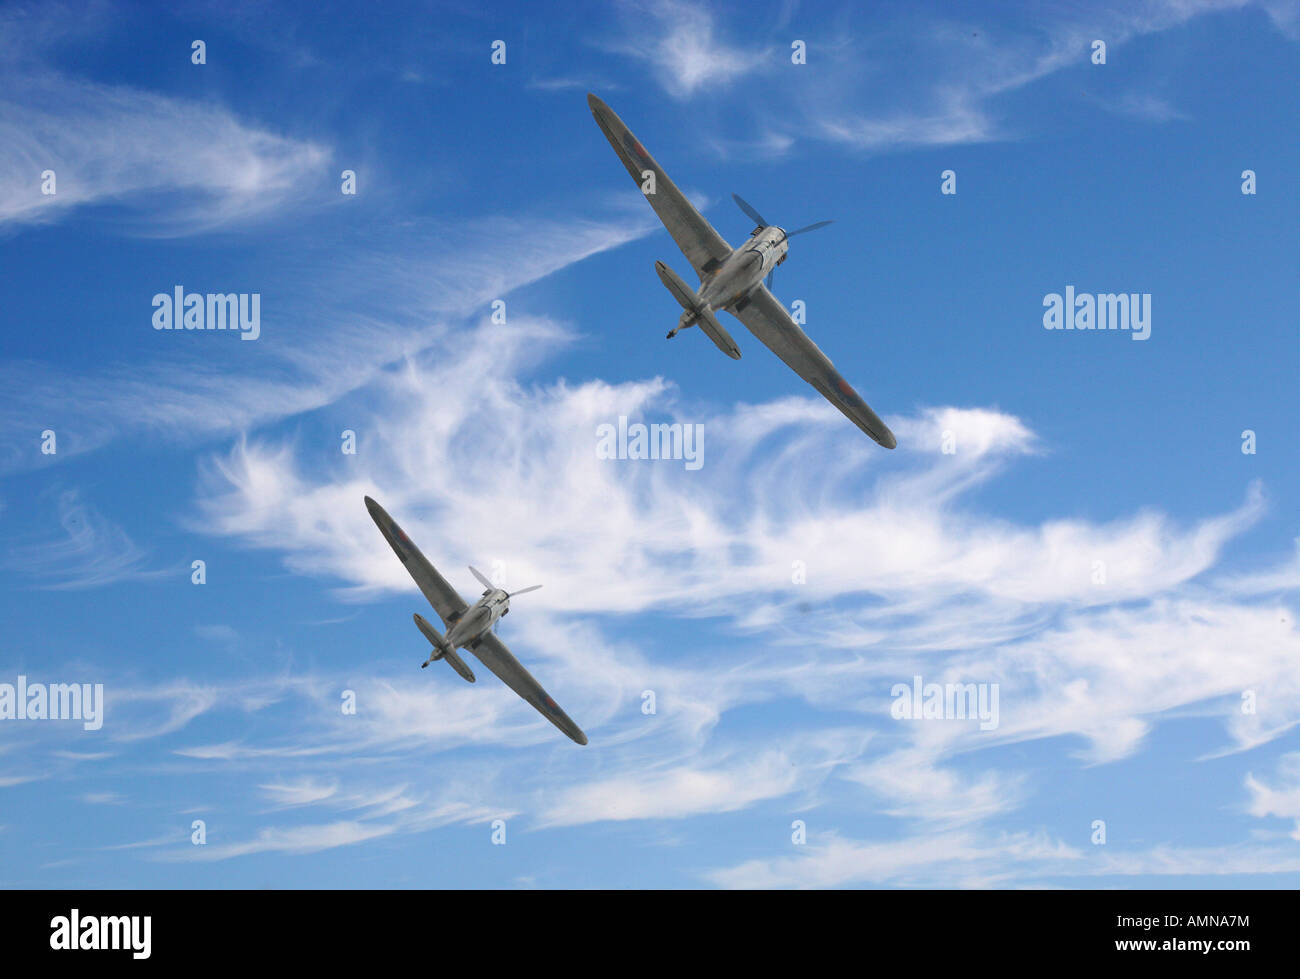 WW2 Hurricane fighter flying away from camera with clear blue summer sky. - Stock Image